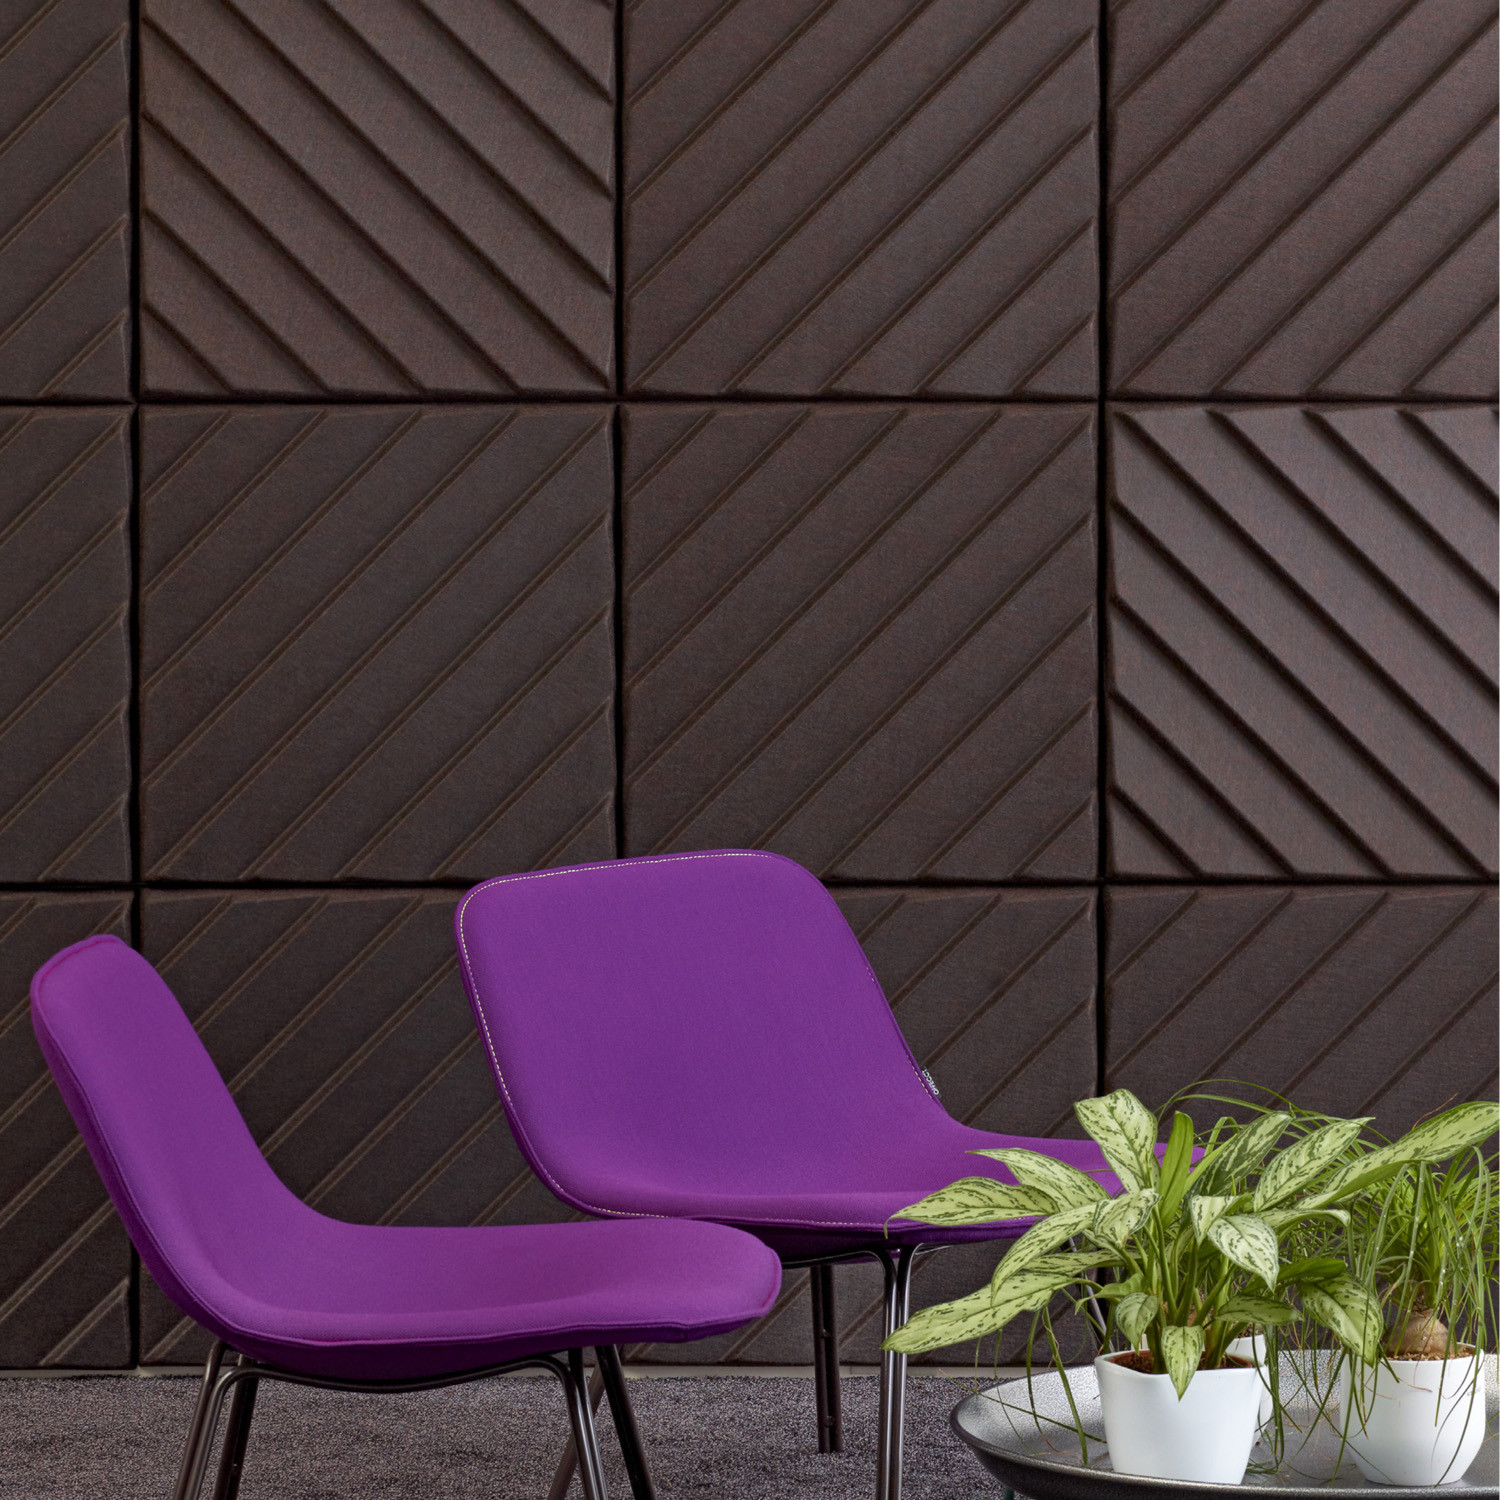 Soundwave Stripes Acoustic Wall Panels